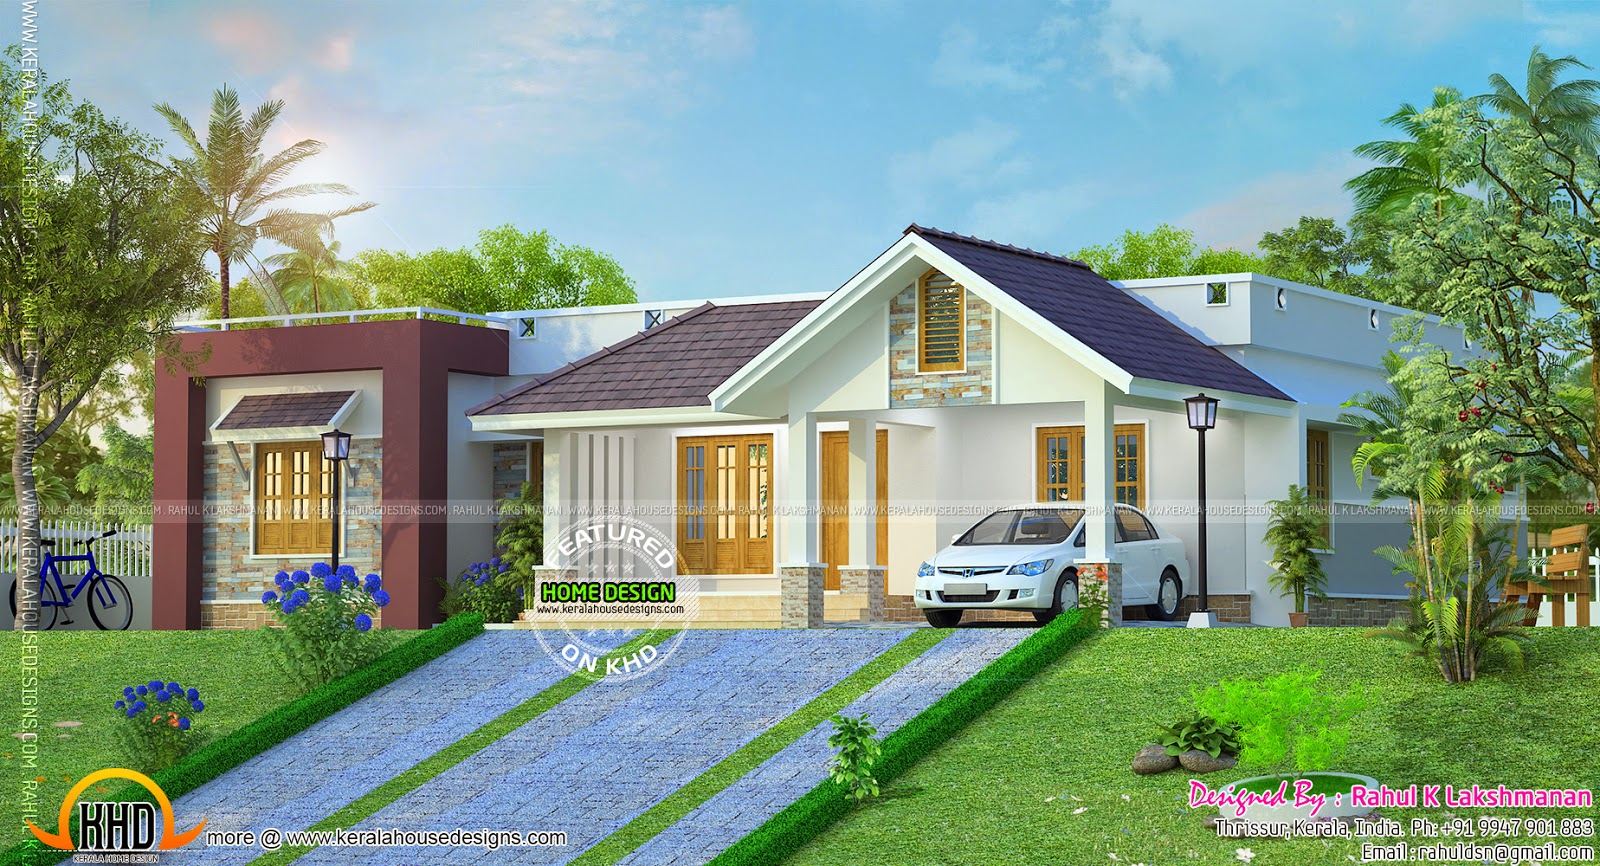 Hillside home plan kerala home design and floor plans for Hillside home designs